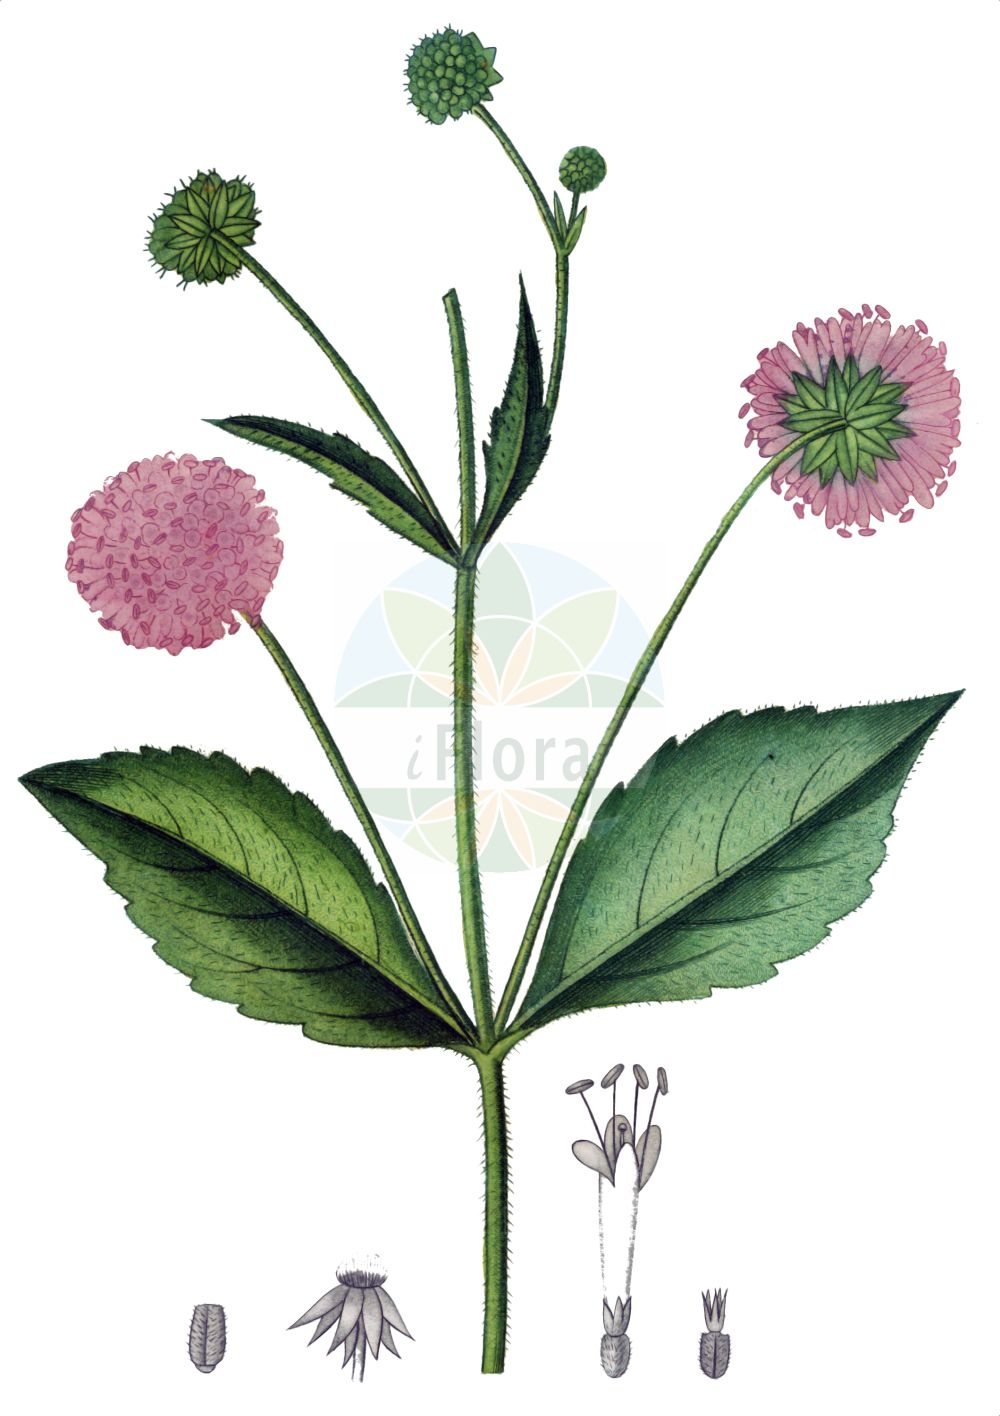 Historische Abbildung von Knautia drymeia (Ungarische Witwenblume - Hungarian Scabious). Das Bild zeigt Blatt, Bluete, Frucht und Same. ---- Historical Drawing of Knautia drymeia (Ungarische Witwenblume - Hungarian Scabious).The image is showing leaf, flower, fruit and seed.(Knautia drymeia,Ungarische Witwenblume,Hungarian Scabious,Knautia drymeia,Scabiosa sylvatica,Ungarische Witwenblume,Breitblaettrige Ungarische Witwenblume,Hungarian Scabious,Knautia,Witwenblume,Scabious,Caprifoliaceae,Geissblattgewaechse,Honeysuckle family,Blatt,Bluete,Frucht,Same,leaf,flower,fruit,seed,de Saint-Hilaire (1808-1822))